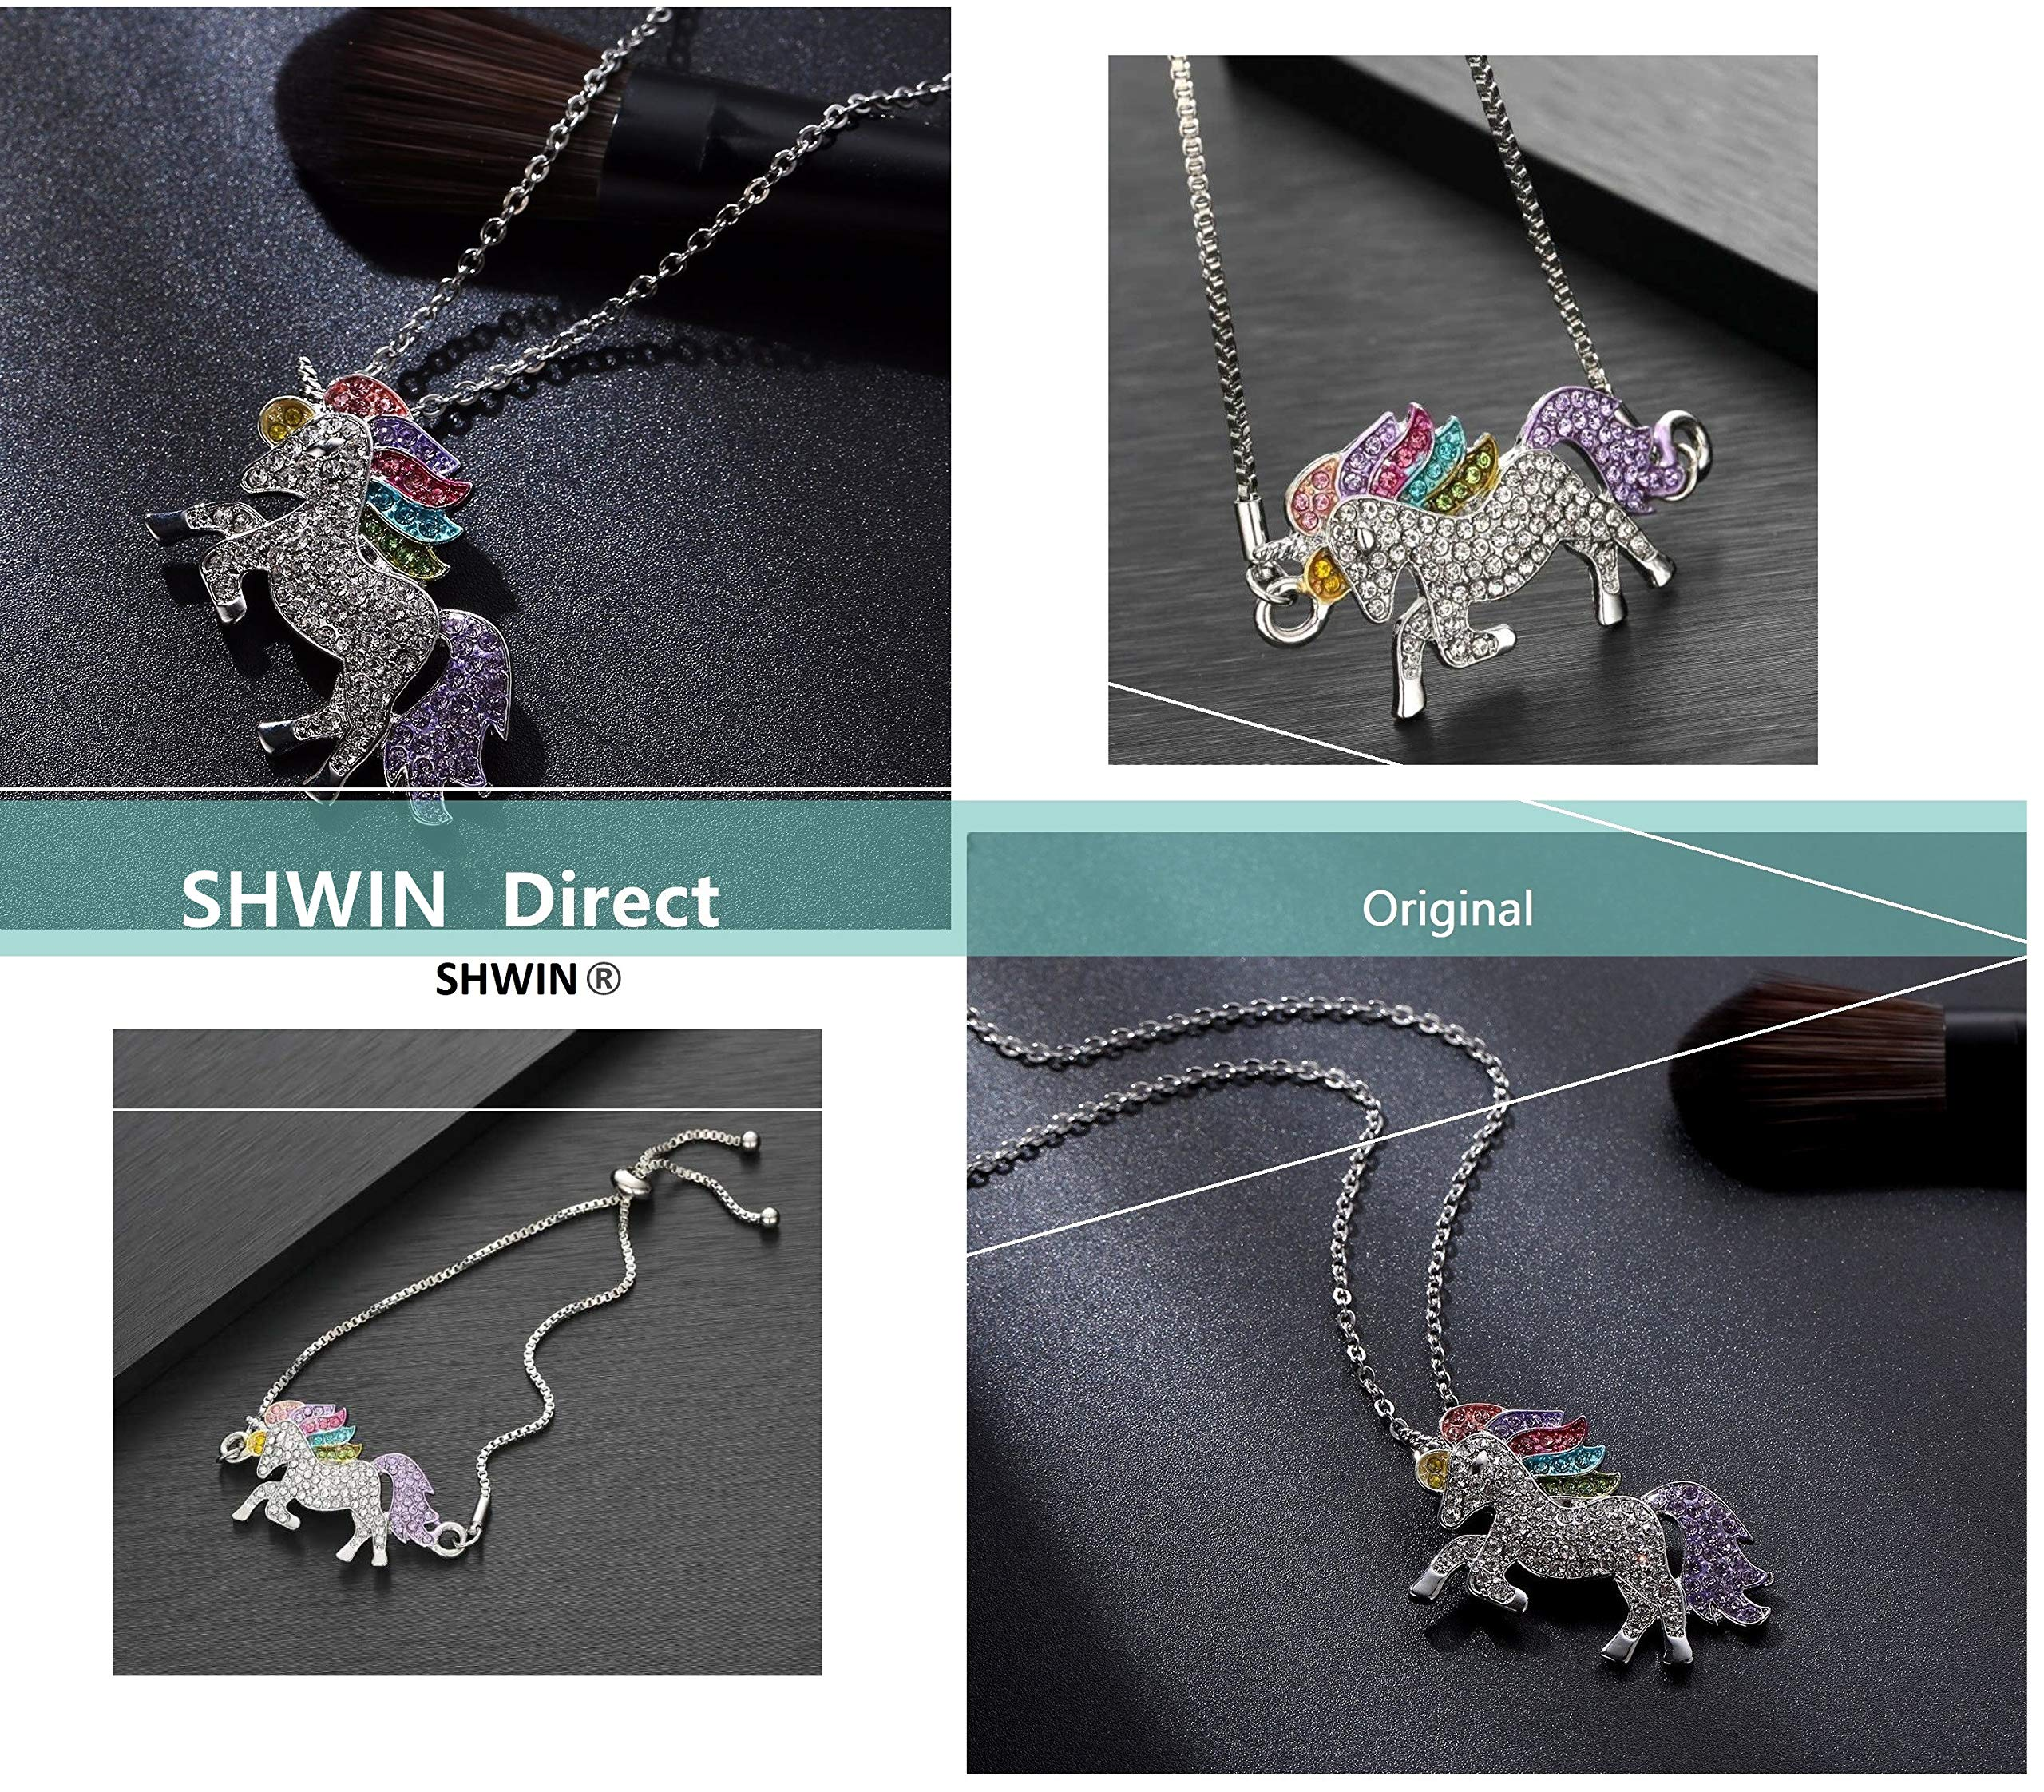 SHWIN Unicorn Necklace – 2 or 4 Pack Rainbow Unicorn Necklace Bracelet Set for Girls Jewelry Unicorn Gifts Set